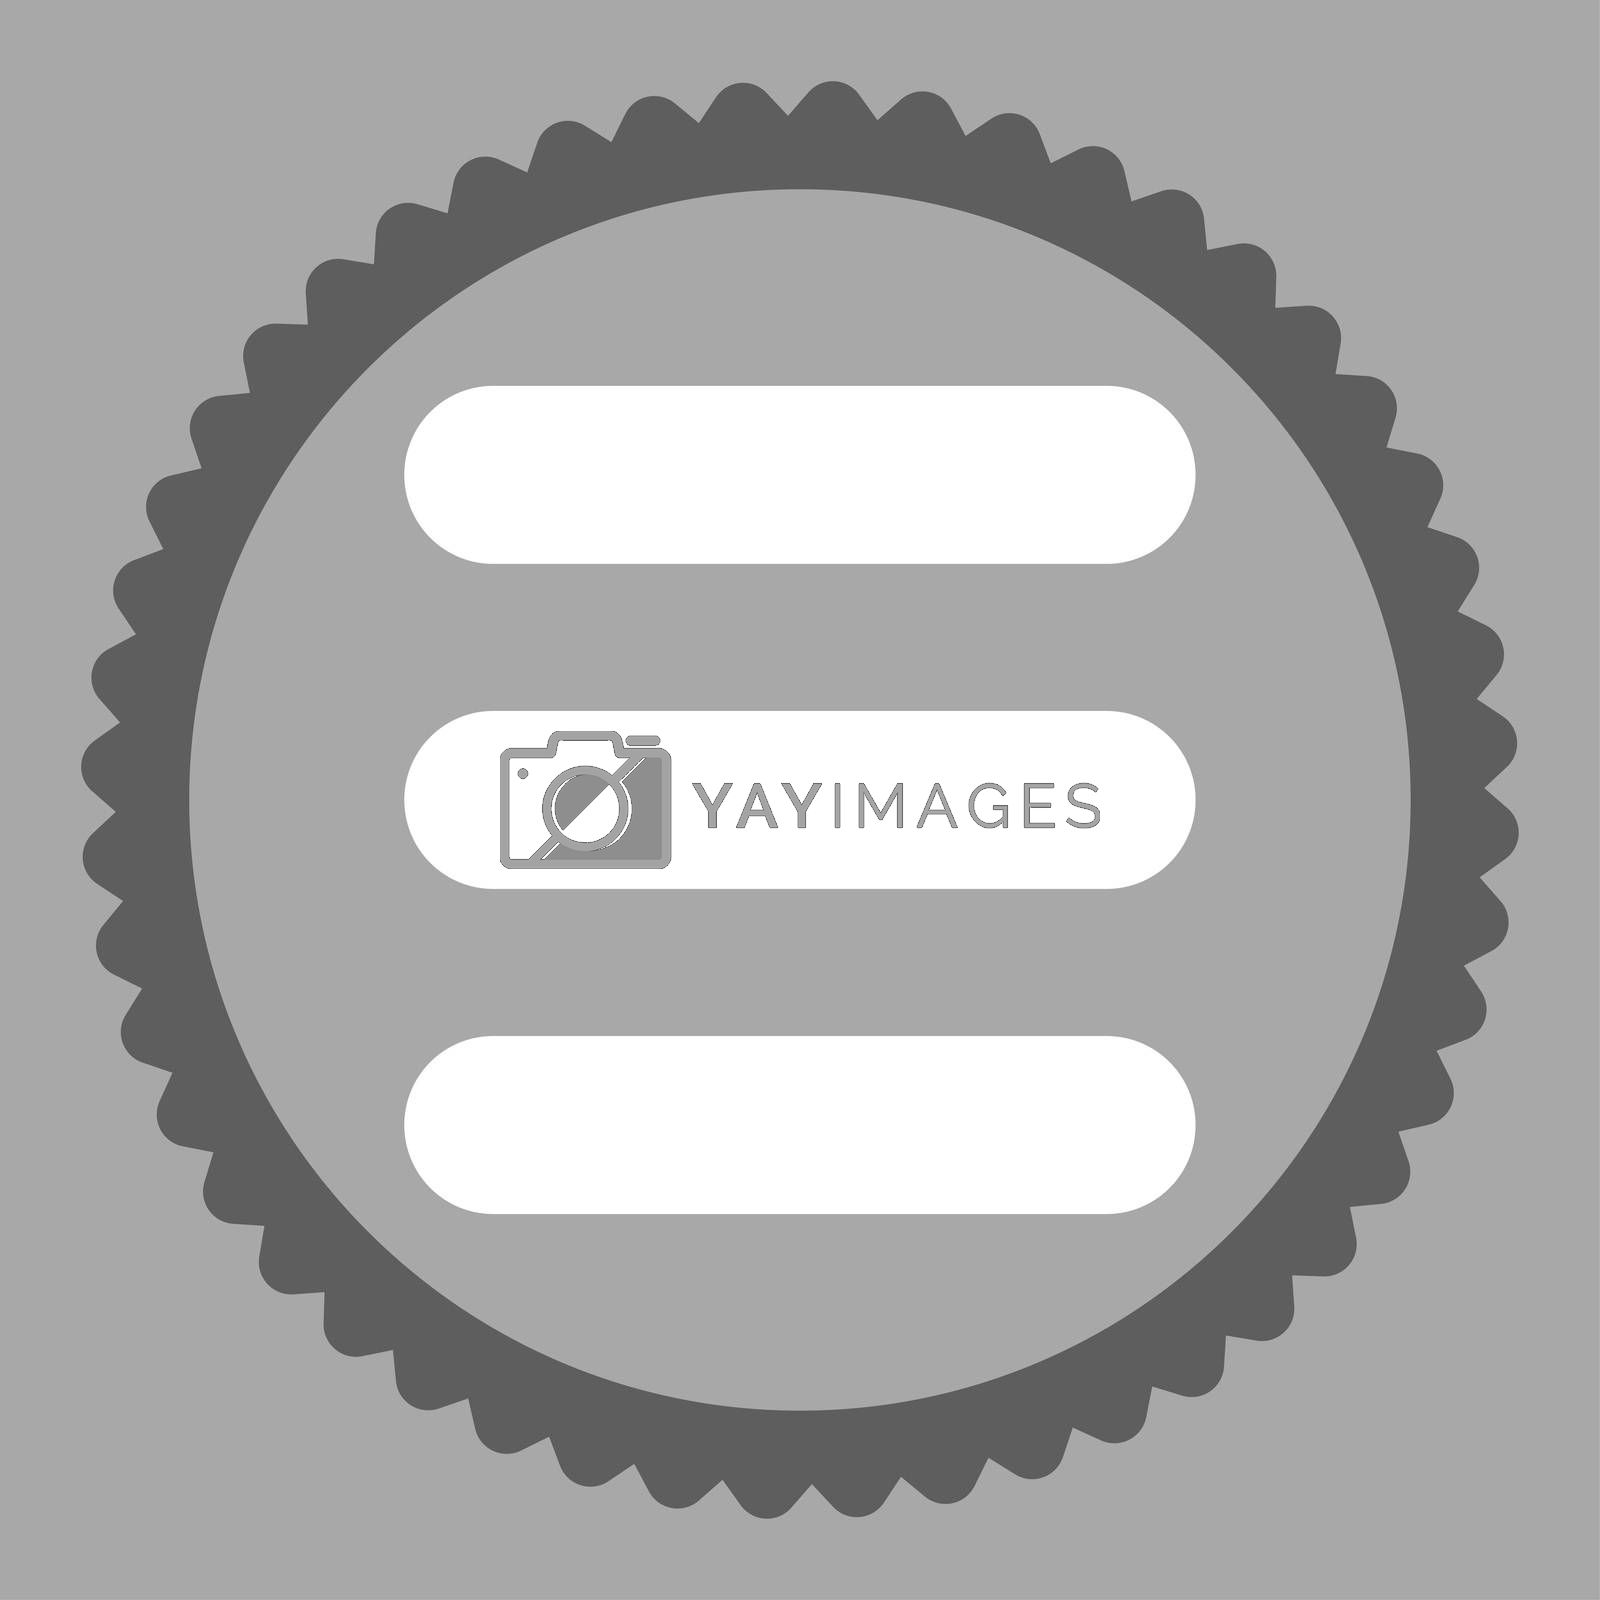 Stack flat dark gray and white colors round stamp icon by Aha-Soft